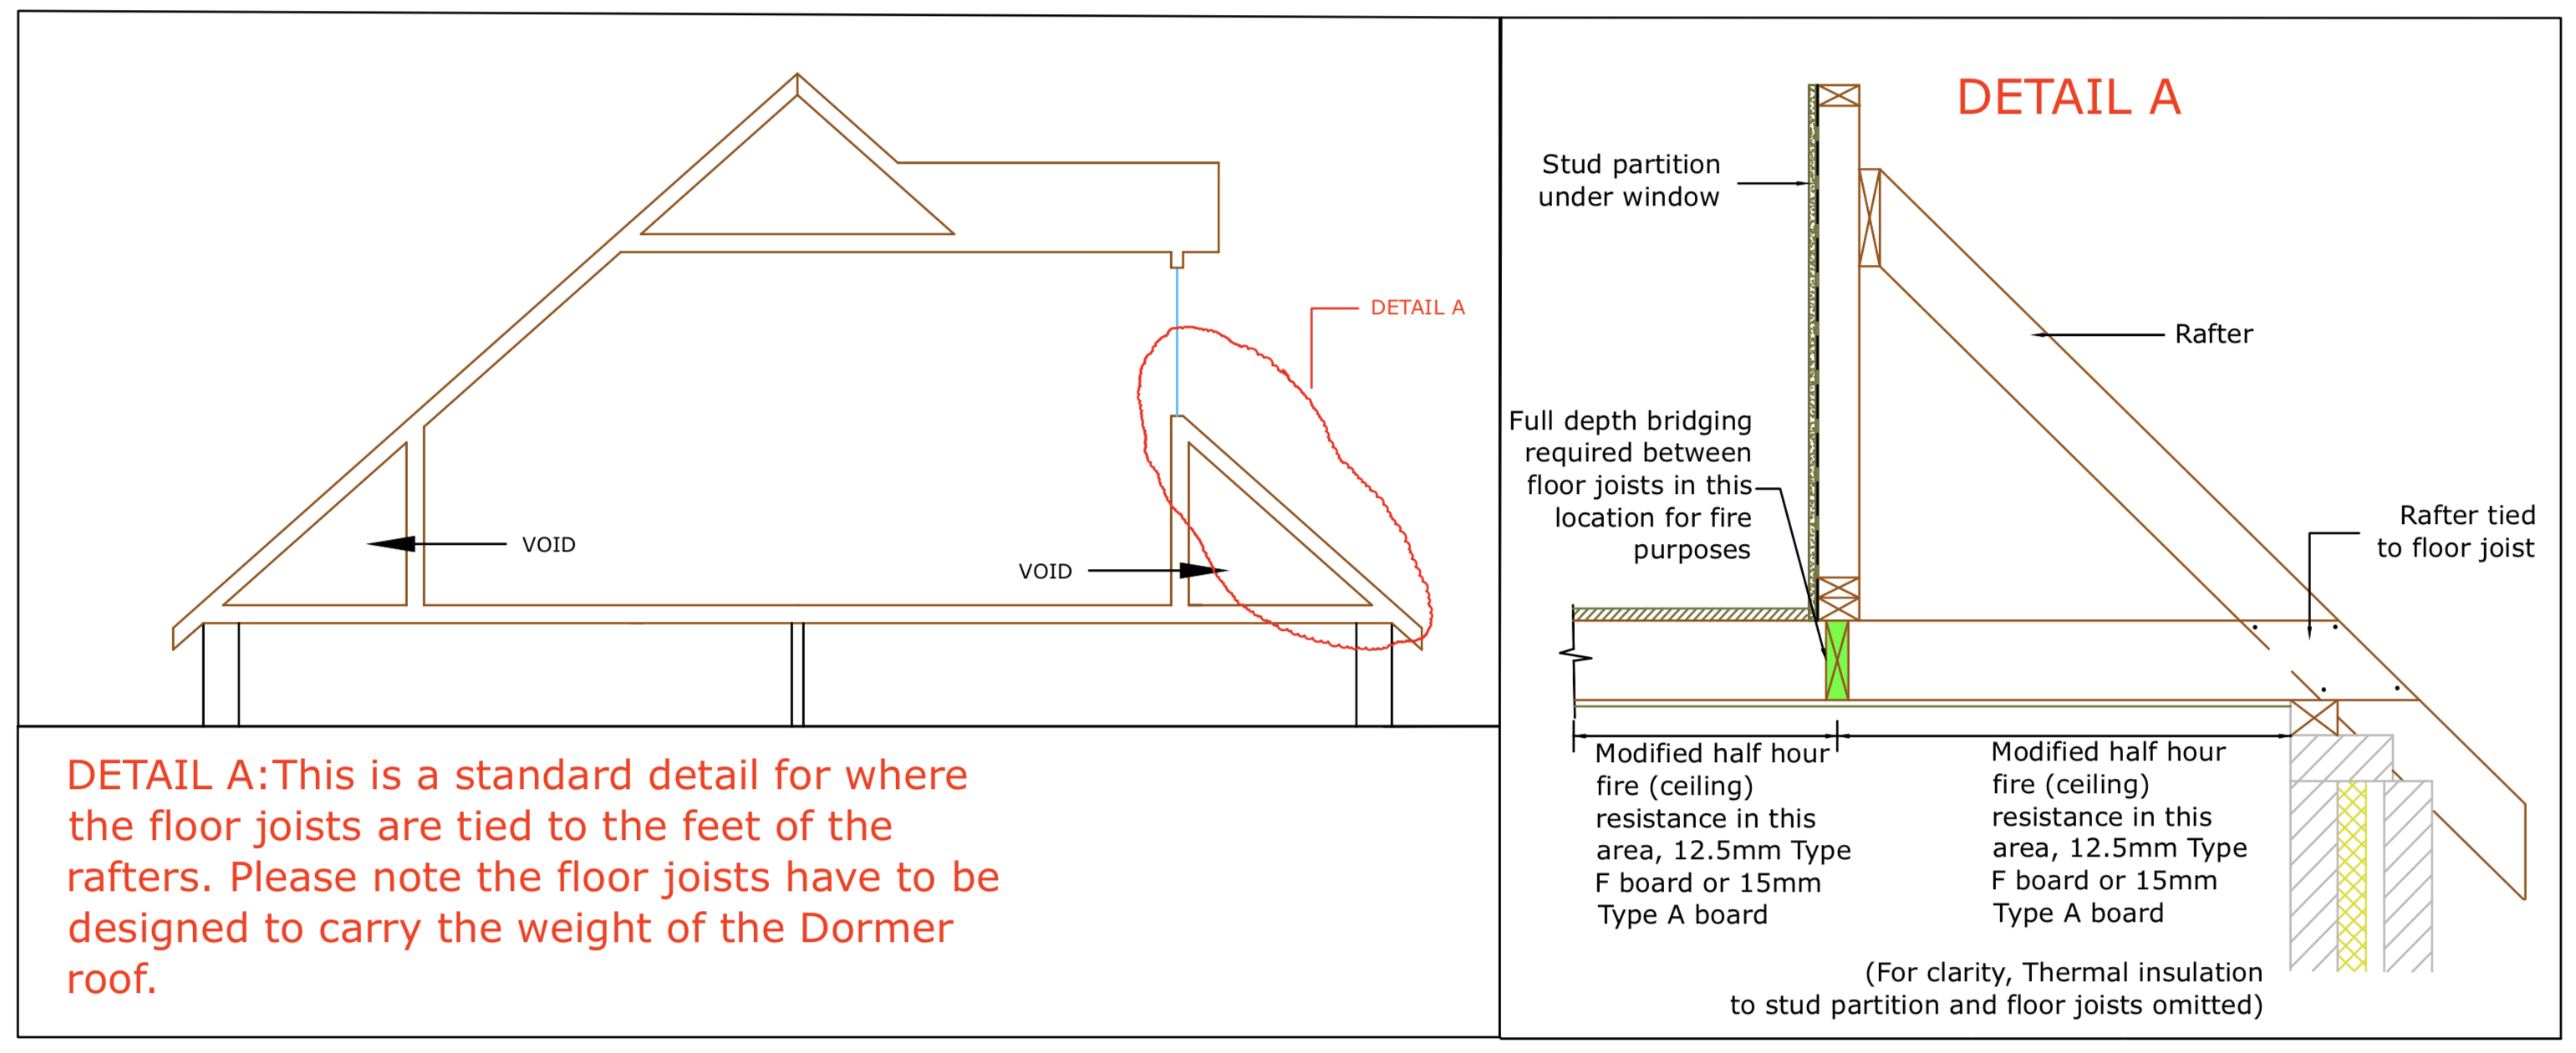 Diagram D55 - Below dormer window roof detail